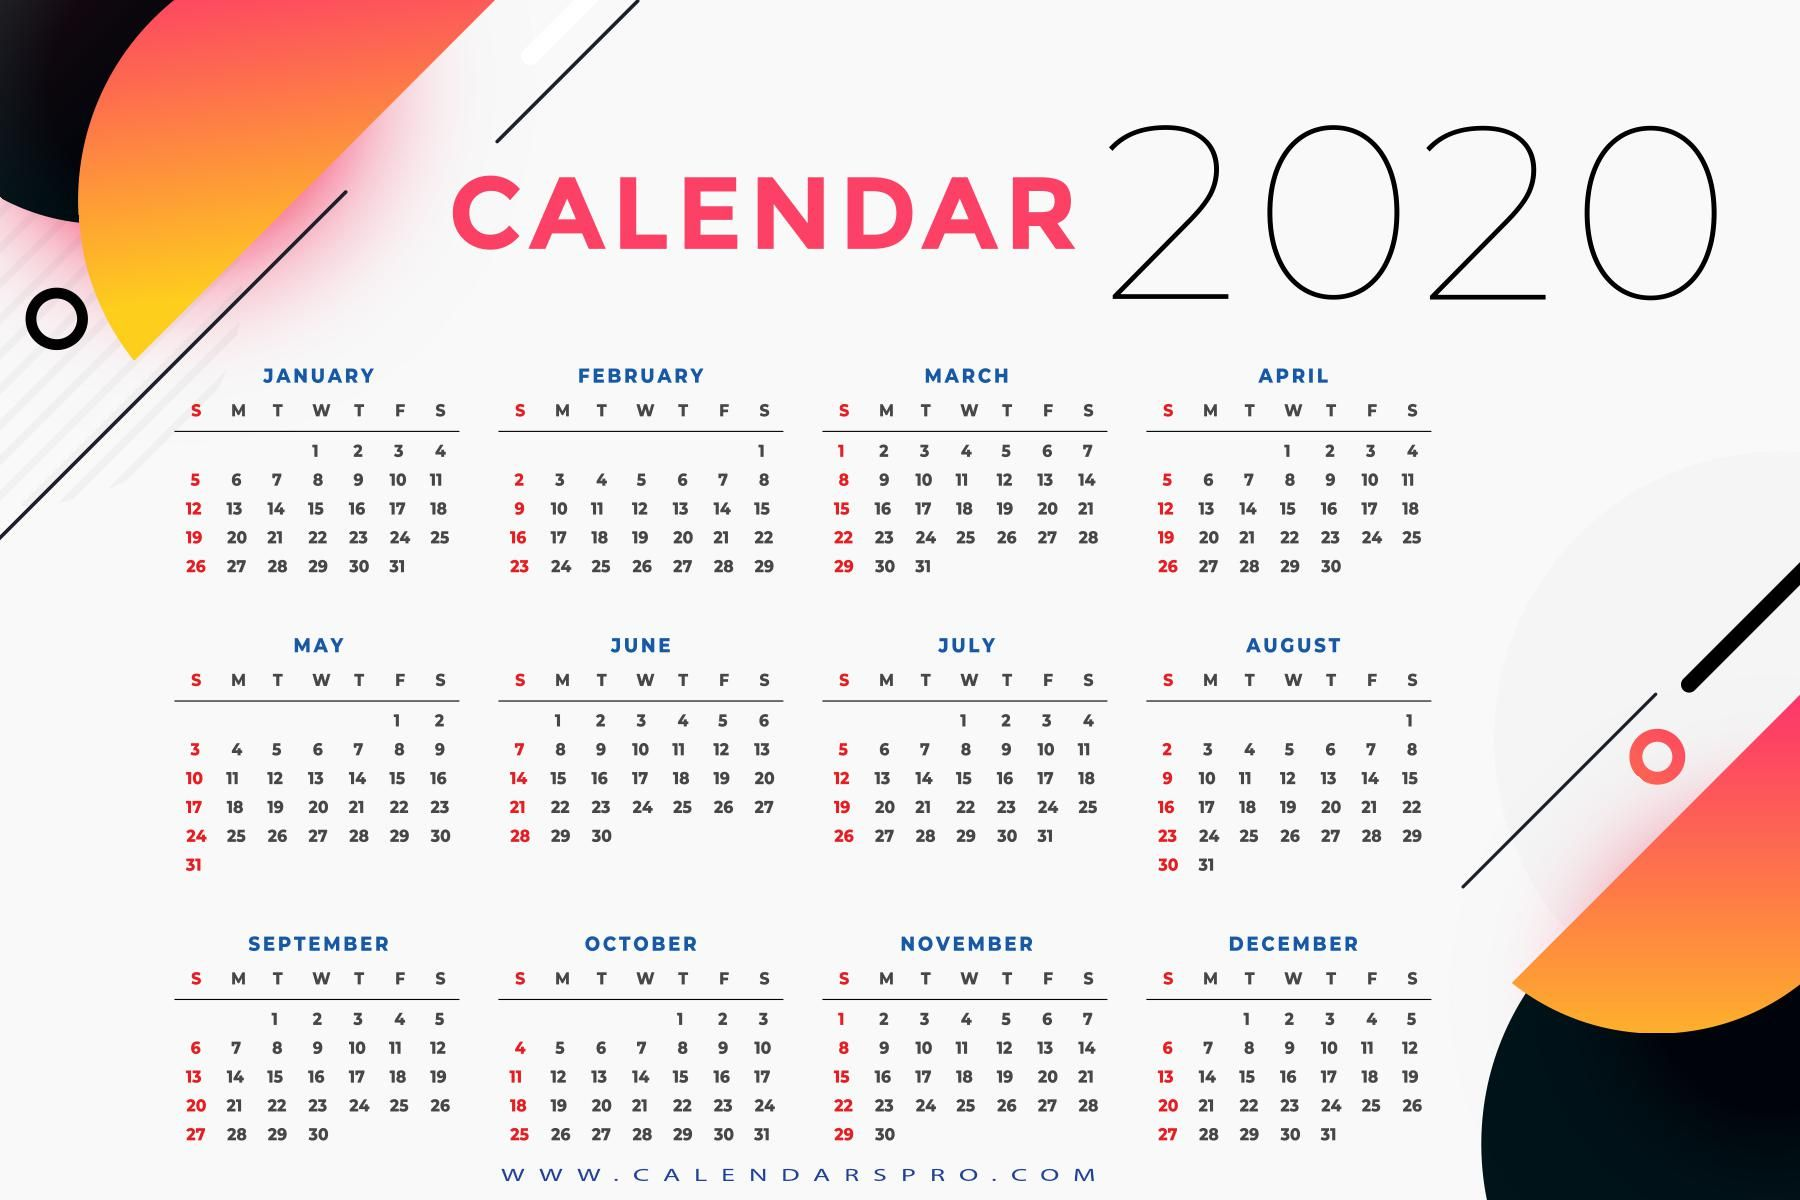 Free Calendar 2020 Online In 2020 Holiday List Personalised Calendar Calendar 2020